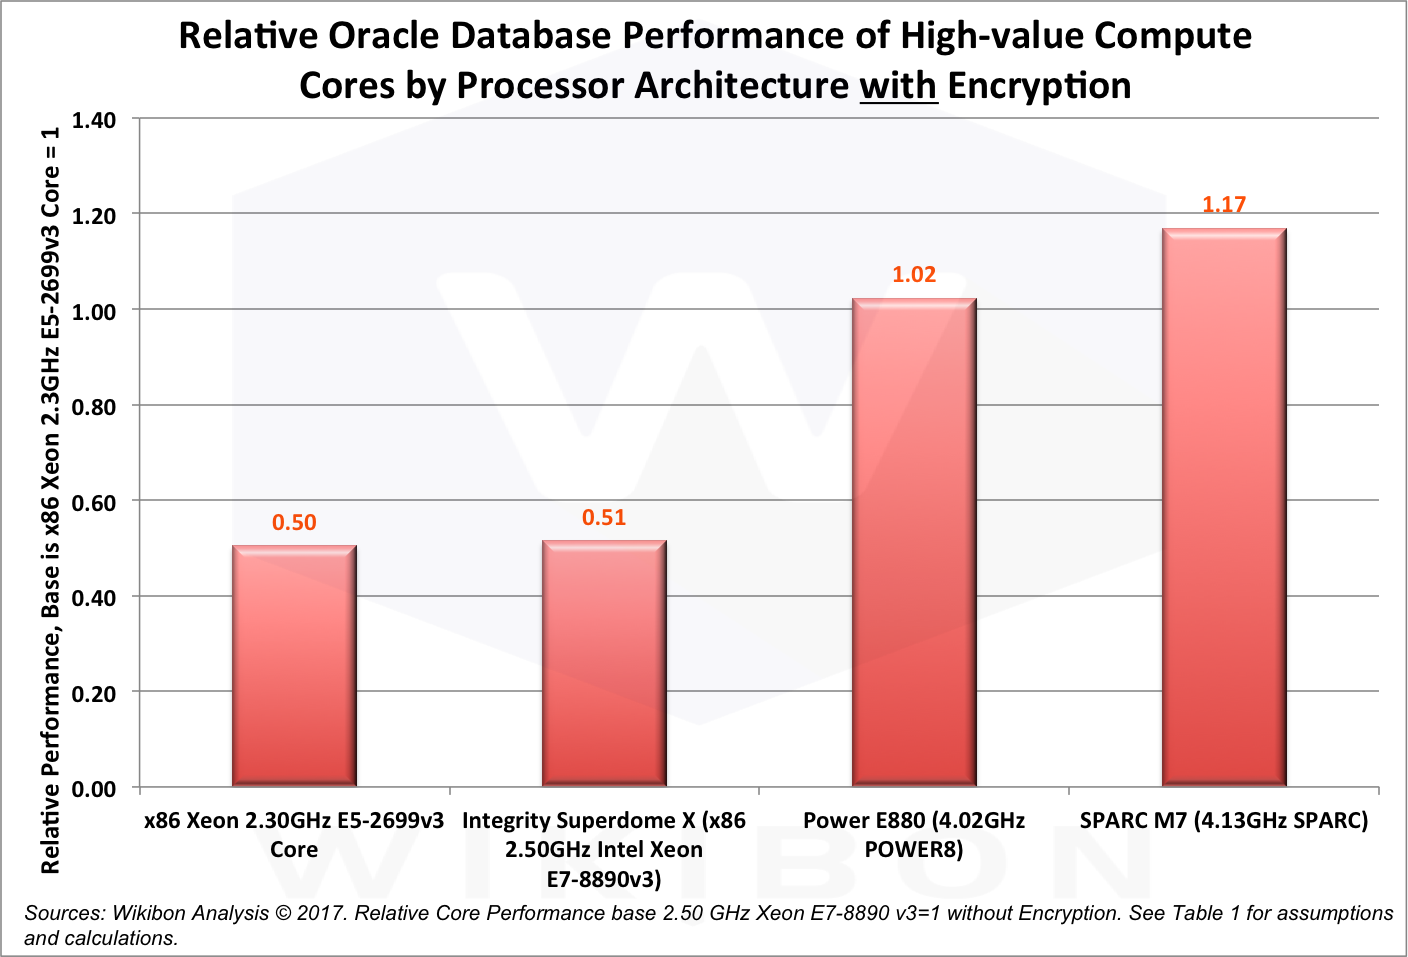 Encrypting Oracle Workloads becomes Cost-effective and